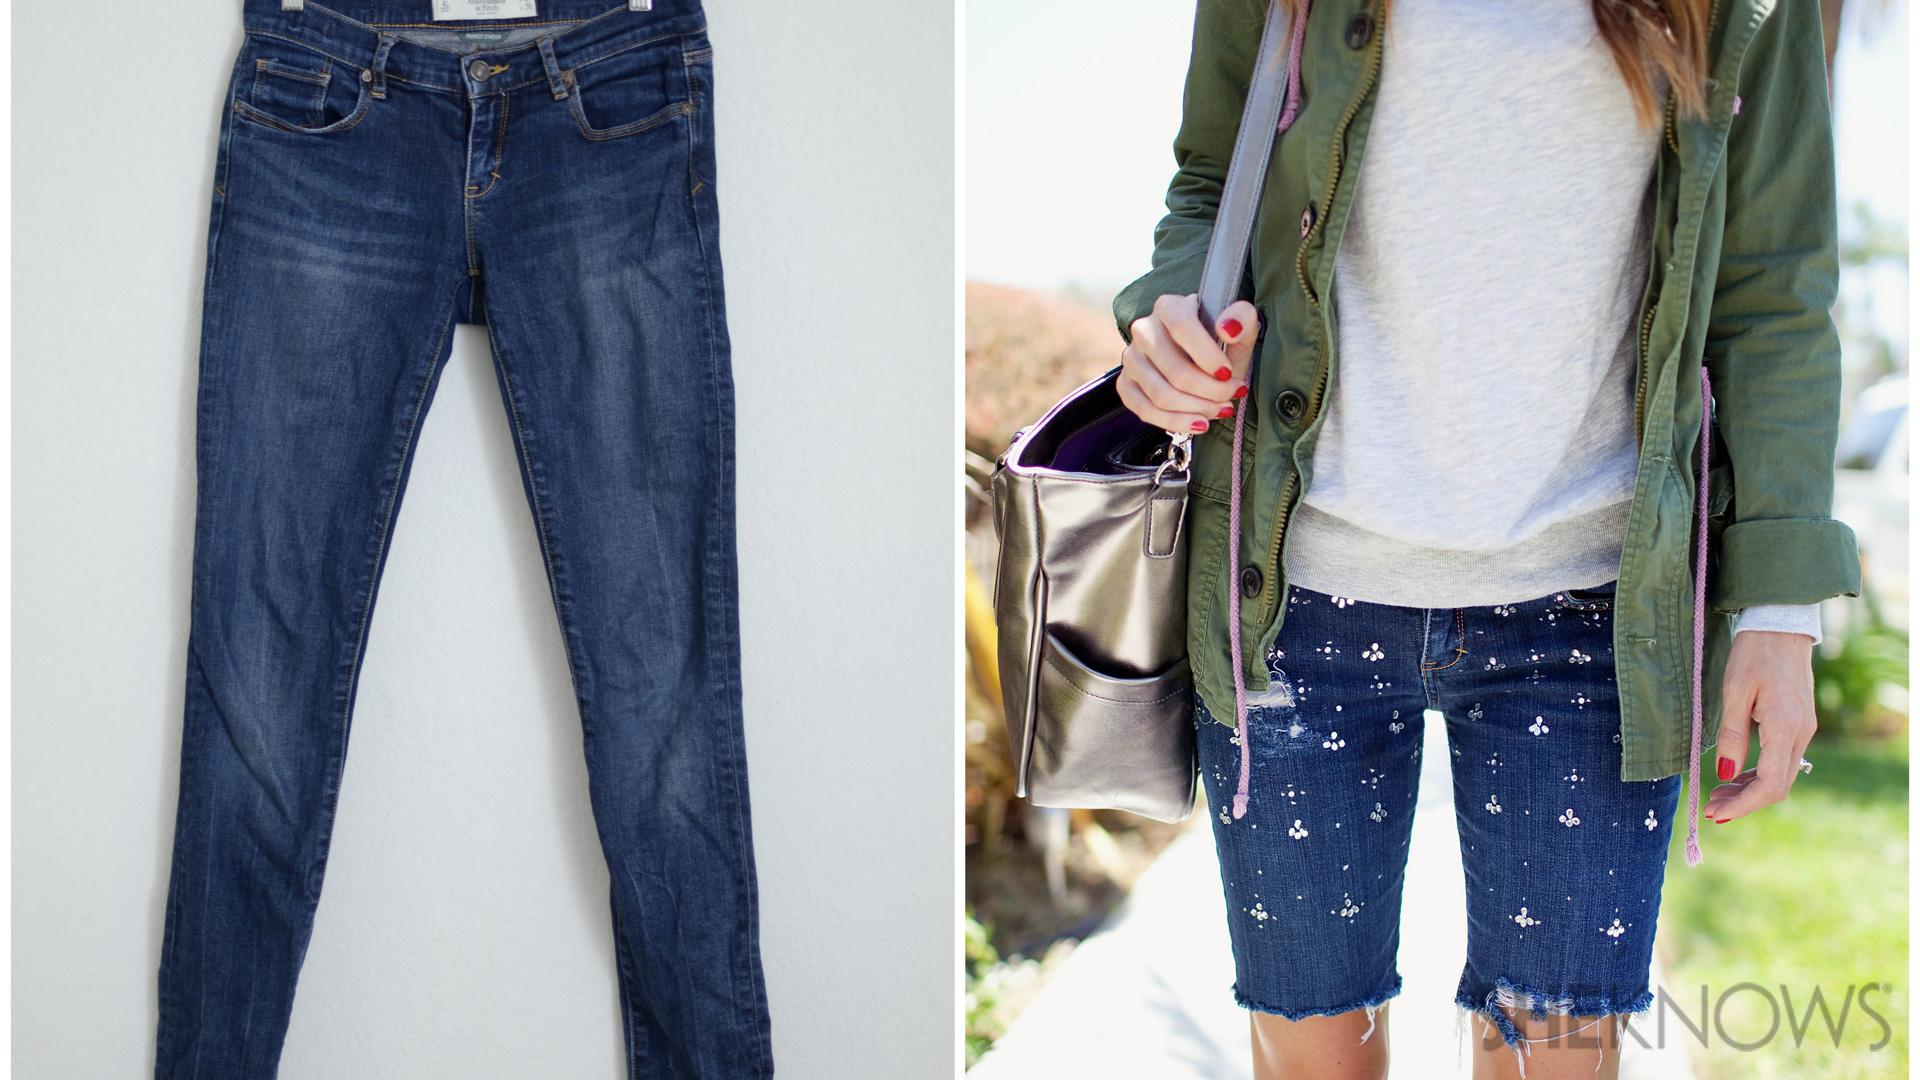 Decorate Your Own Diy Jean Shorts Sheknows